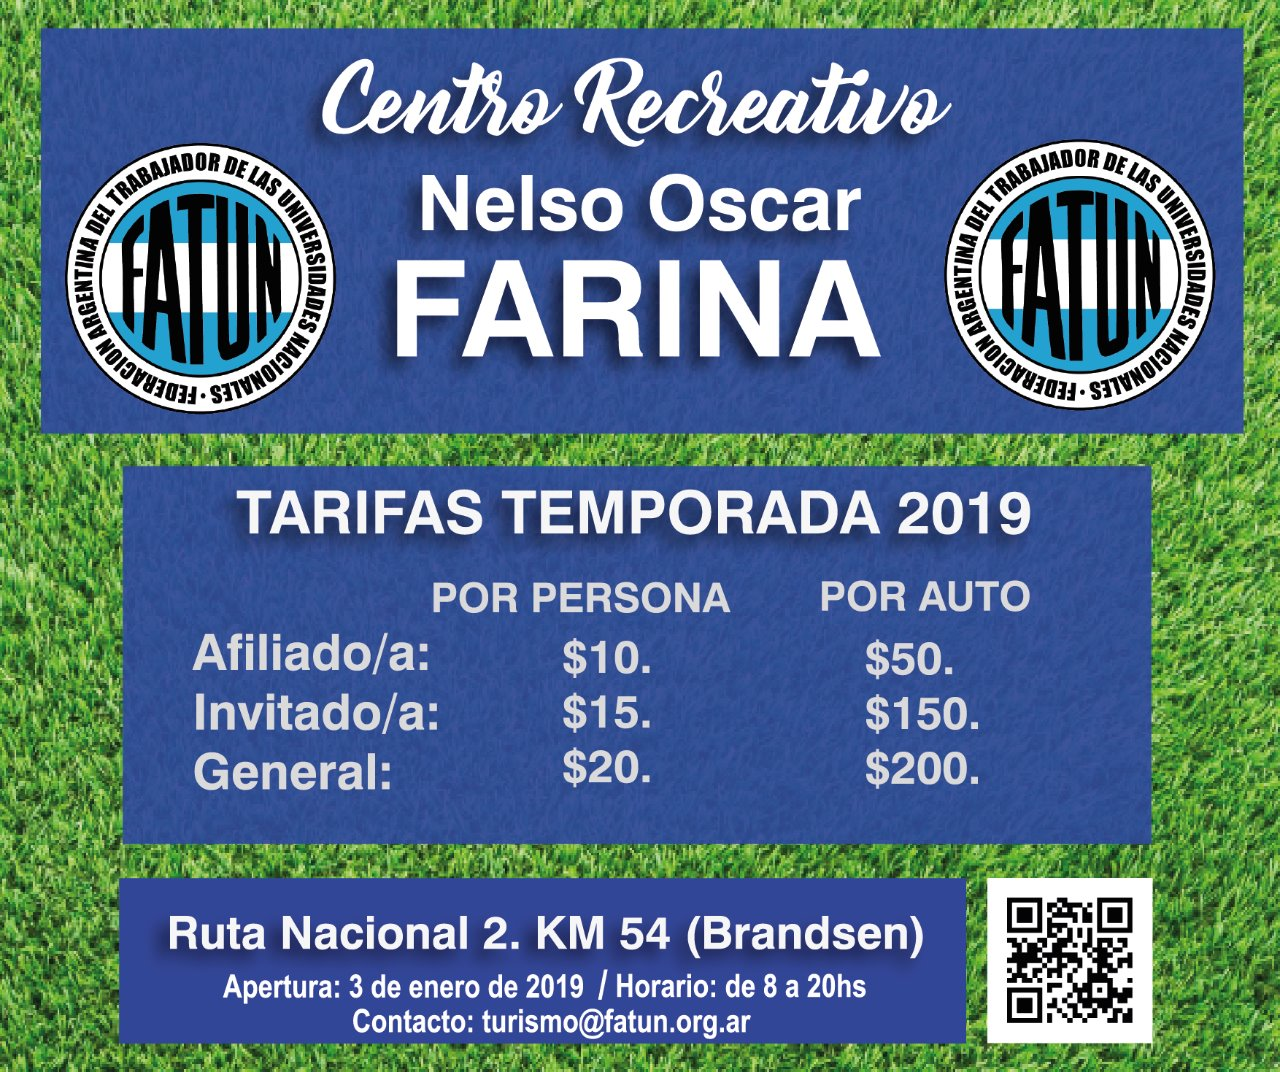 Tarifas Centro Recreativo